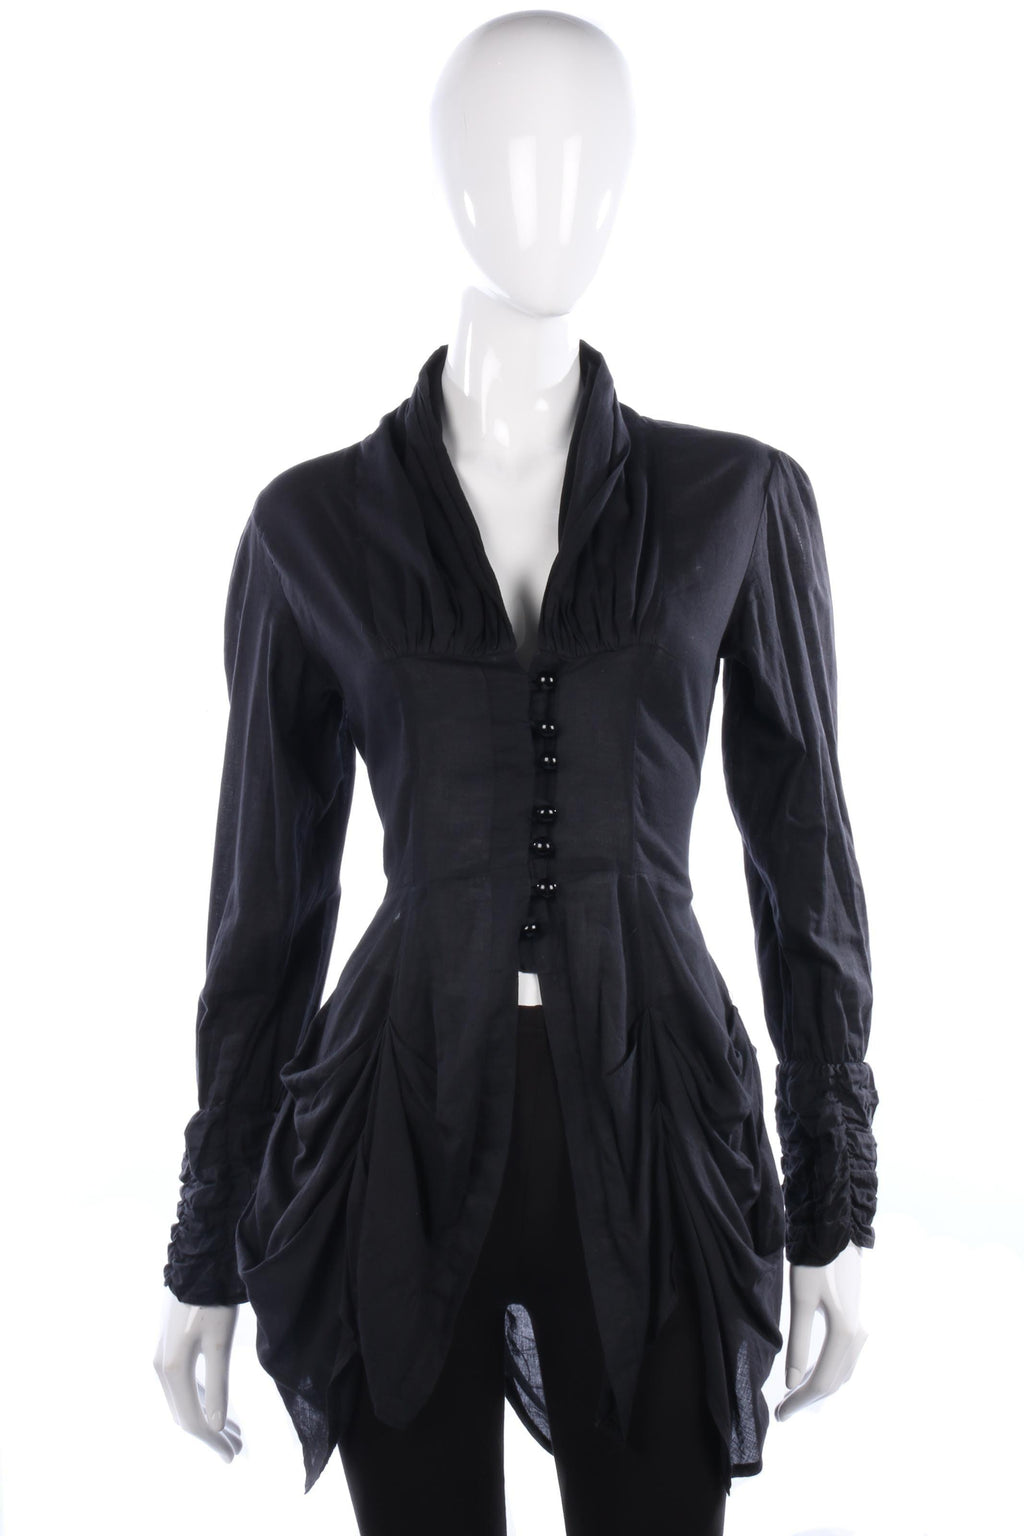 Layers Paris Long Black Cotton Shirt with Button and Ruffle Detail Size 6/8